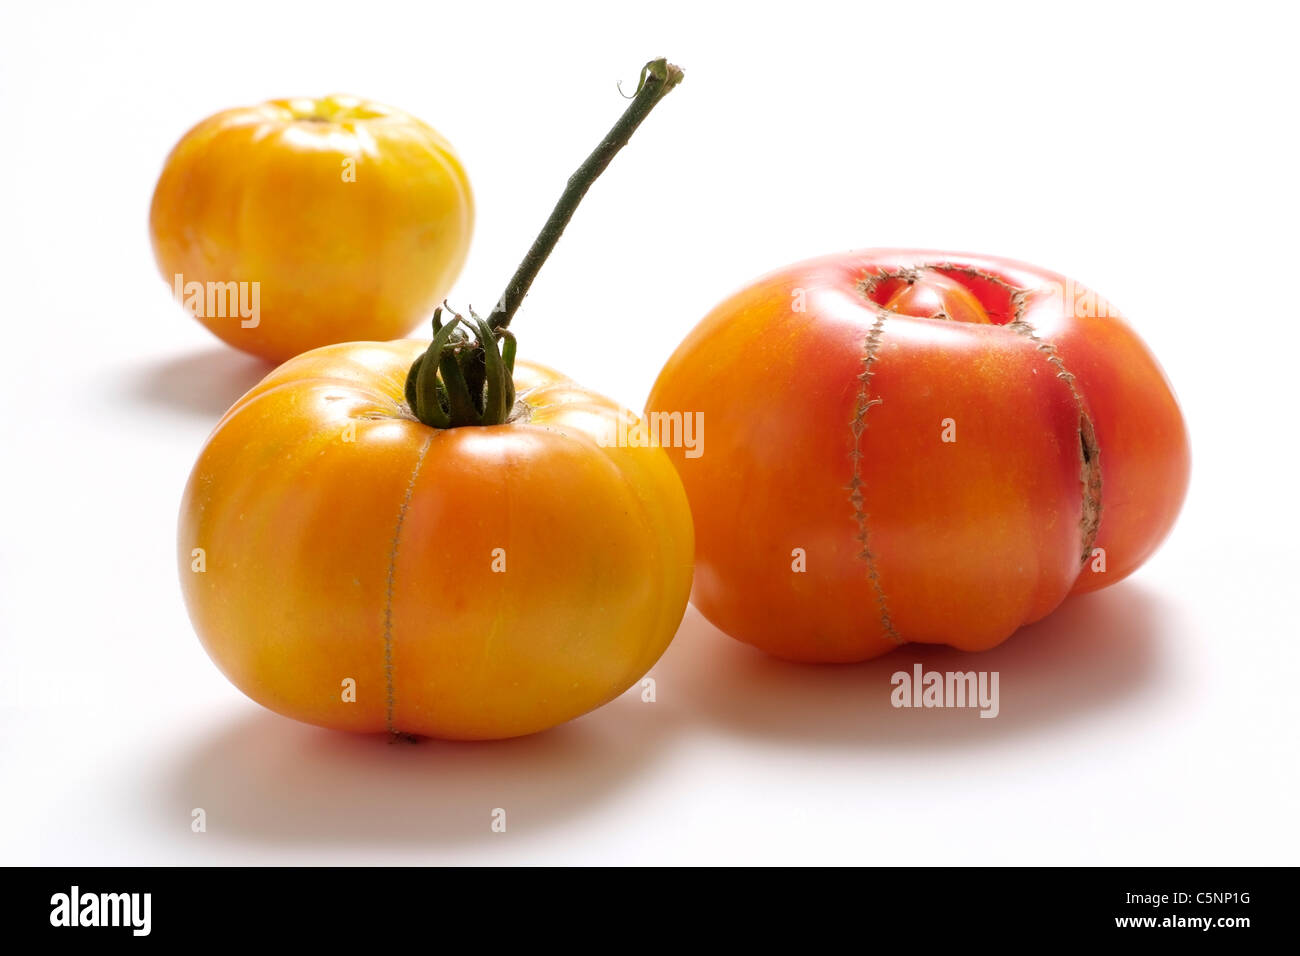 Tomato varieties:  Rainbow - Stock Image